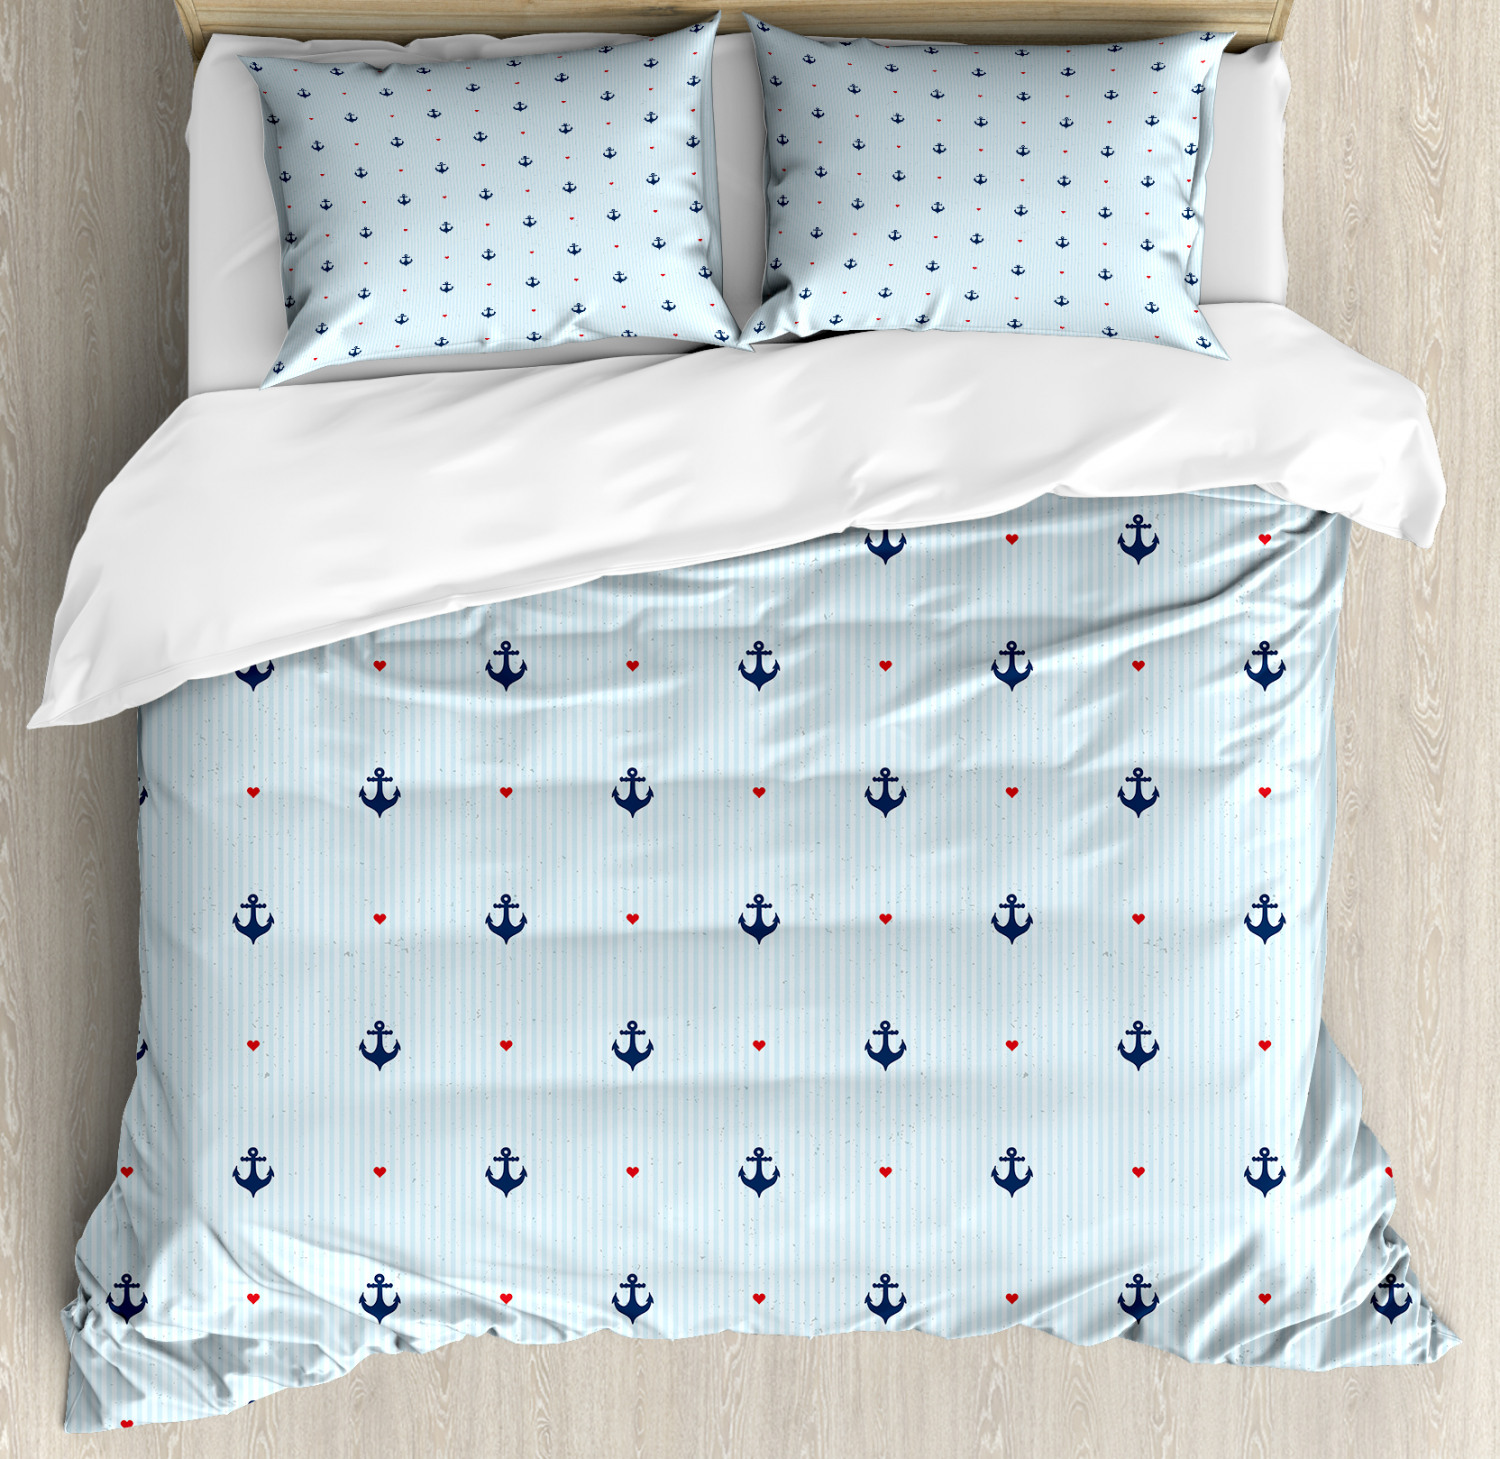 Anchor Duvet Cover Set with Pillow Shams Red Hearts Nautical Print